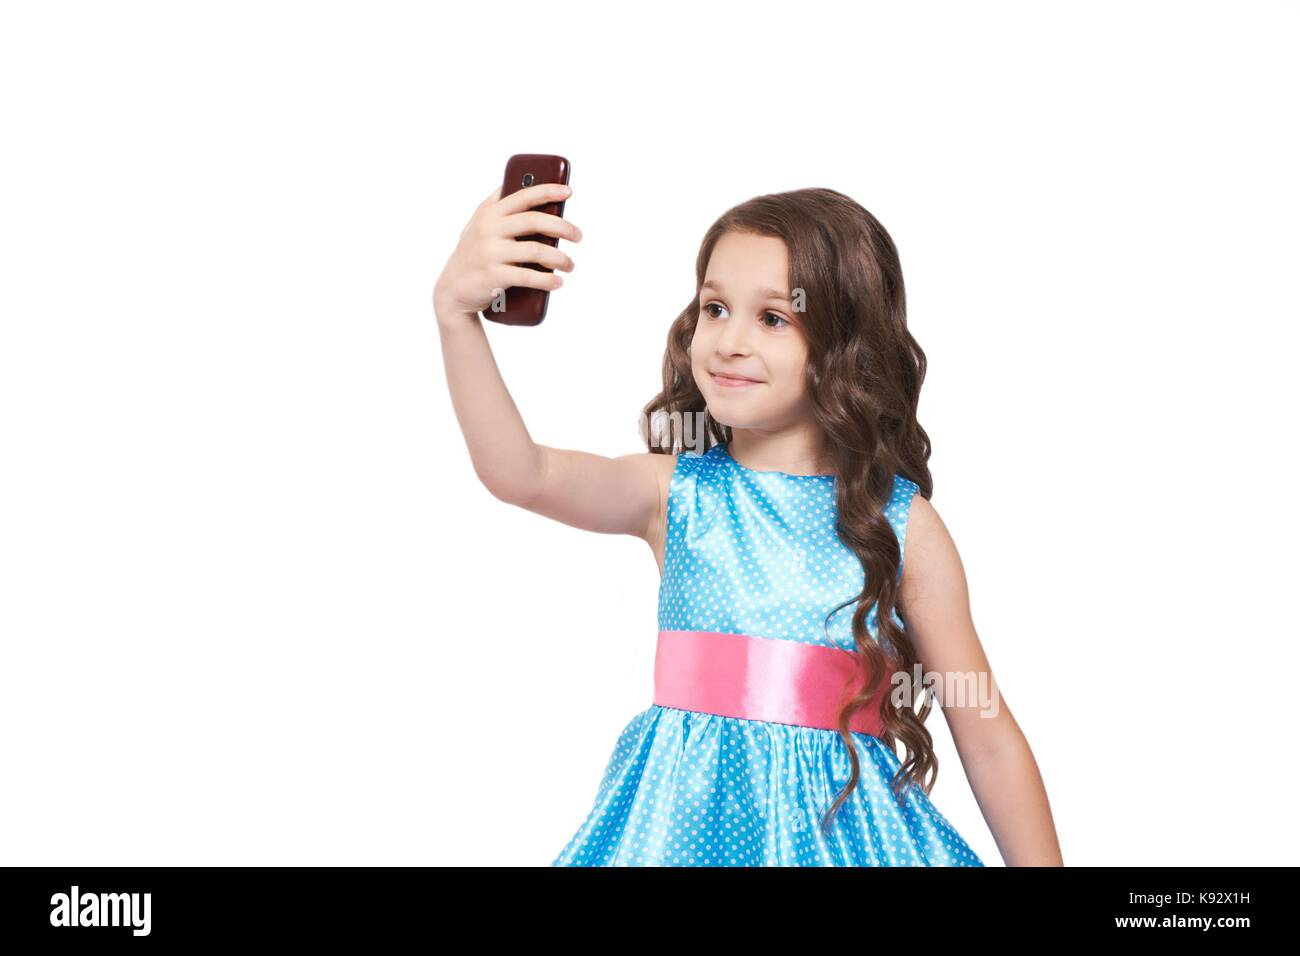 785aa8227 Portrait. Girl. Selfy. Cute baby. White background. Blue dress Stock ...